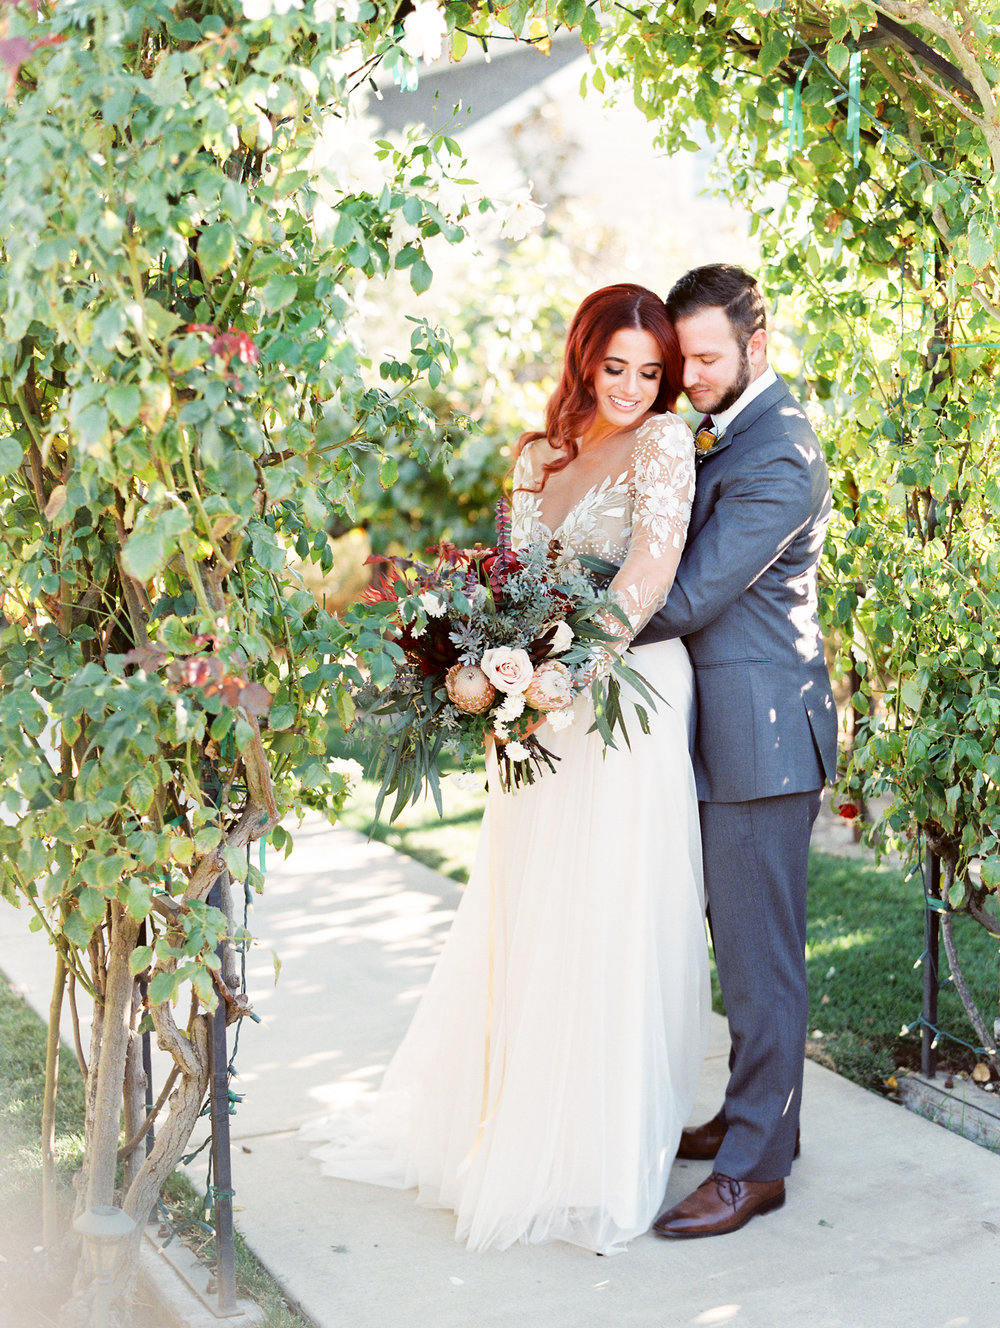 fall-inspired-wedding-at-scribner-bend-vineyards-in-sacramento-california-1-7.jpg